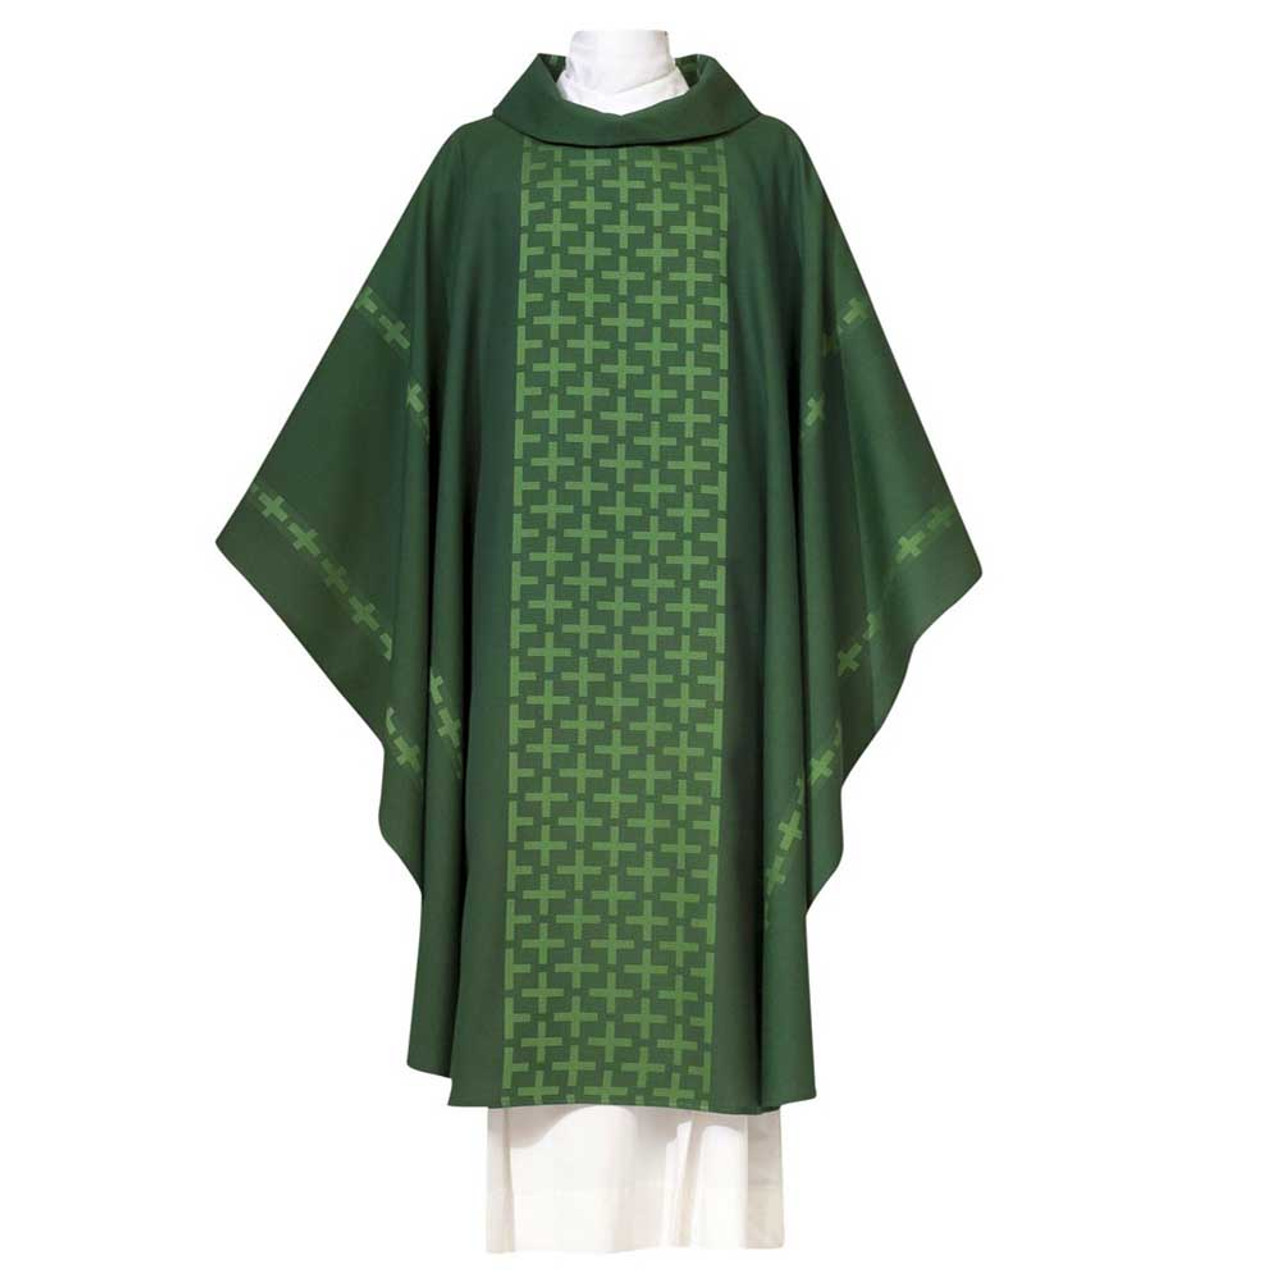 102-7893 All Saints Chasuble Forest Green